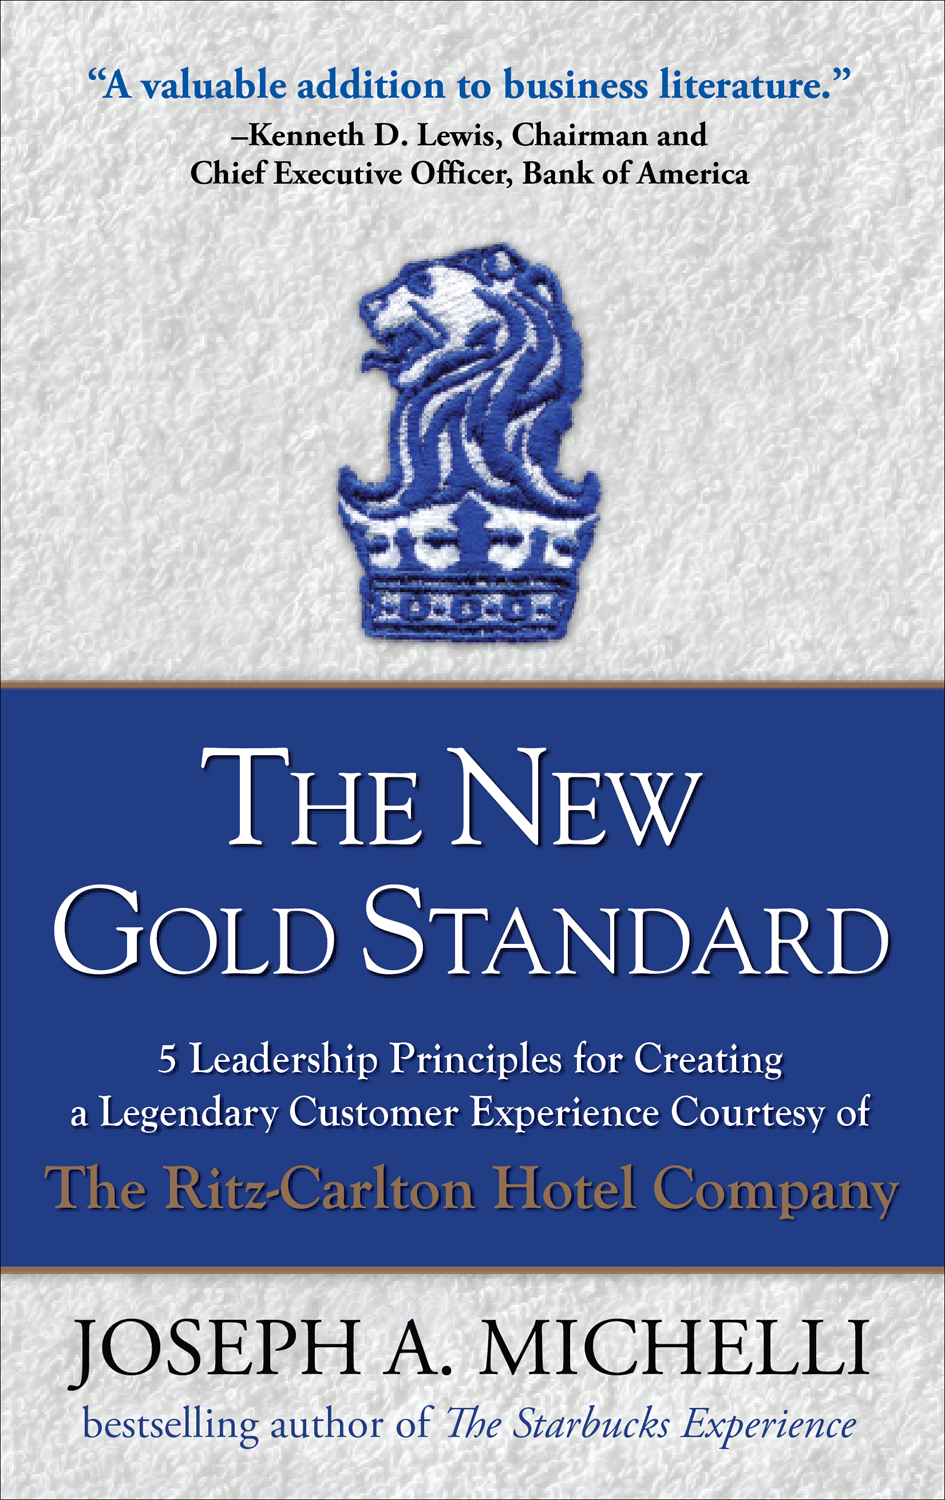 September 22: Author Discusses Principles for Creating Legendary ...